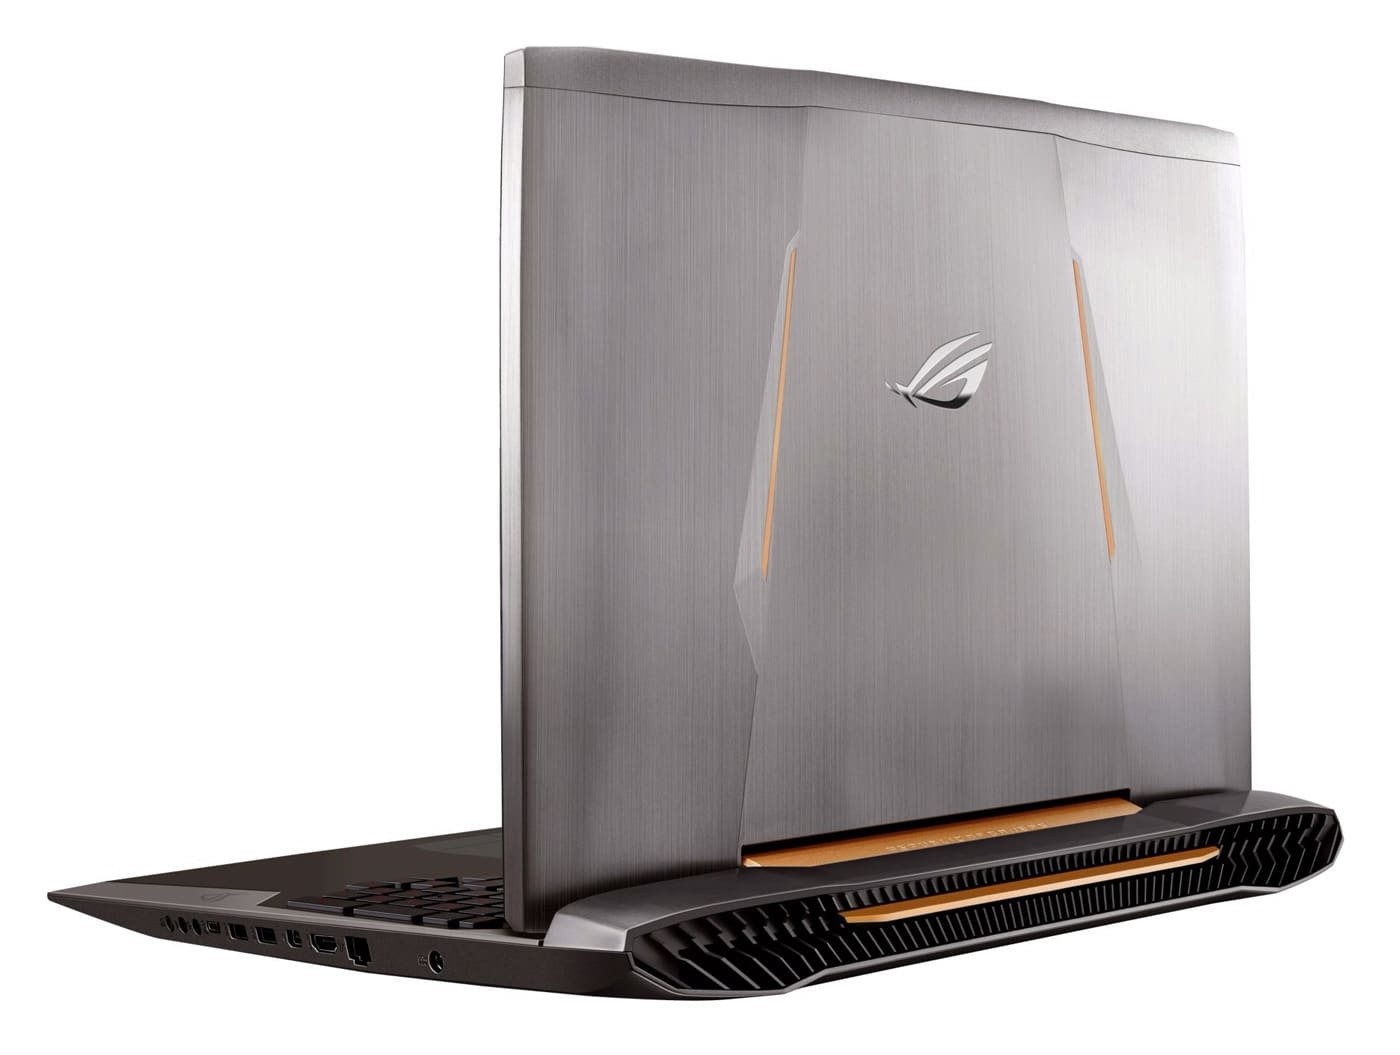 Asus G752VS-GC021T, PC portable 17 pouces IPS 1070 SSD512 i7HK 64Go 2999€